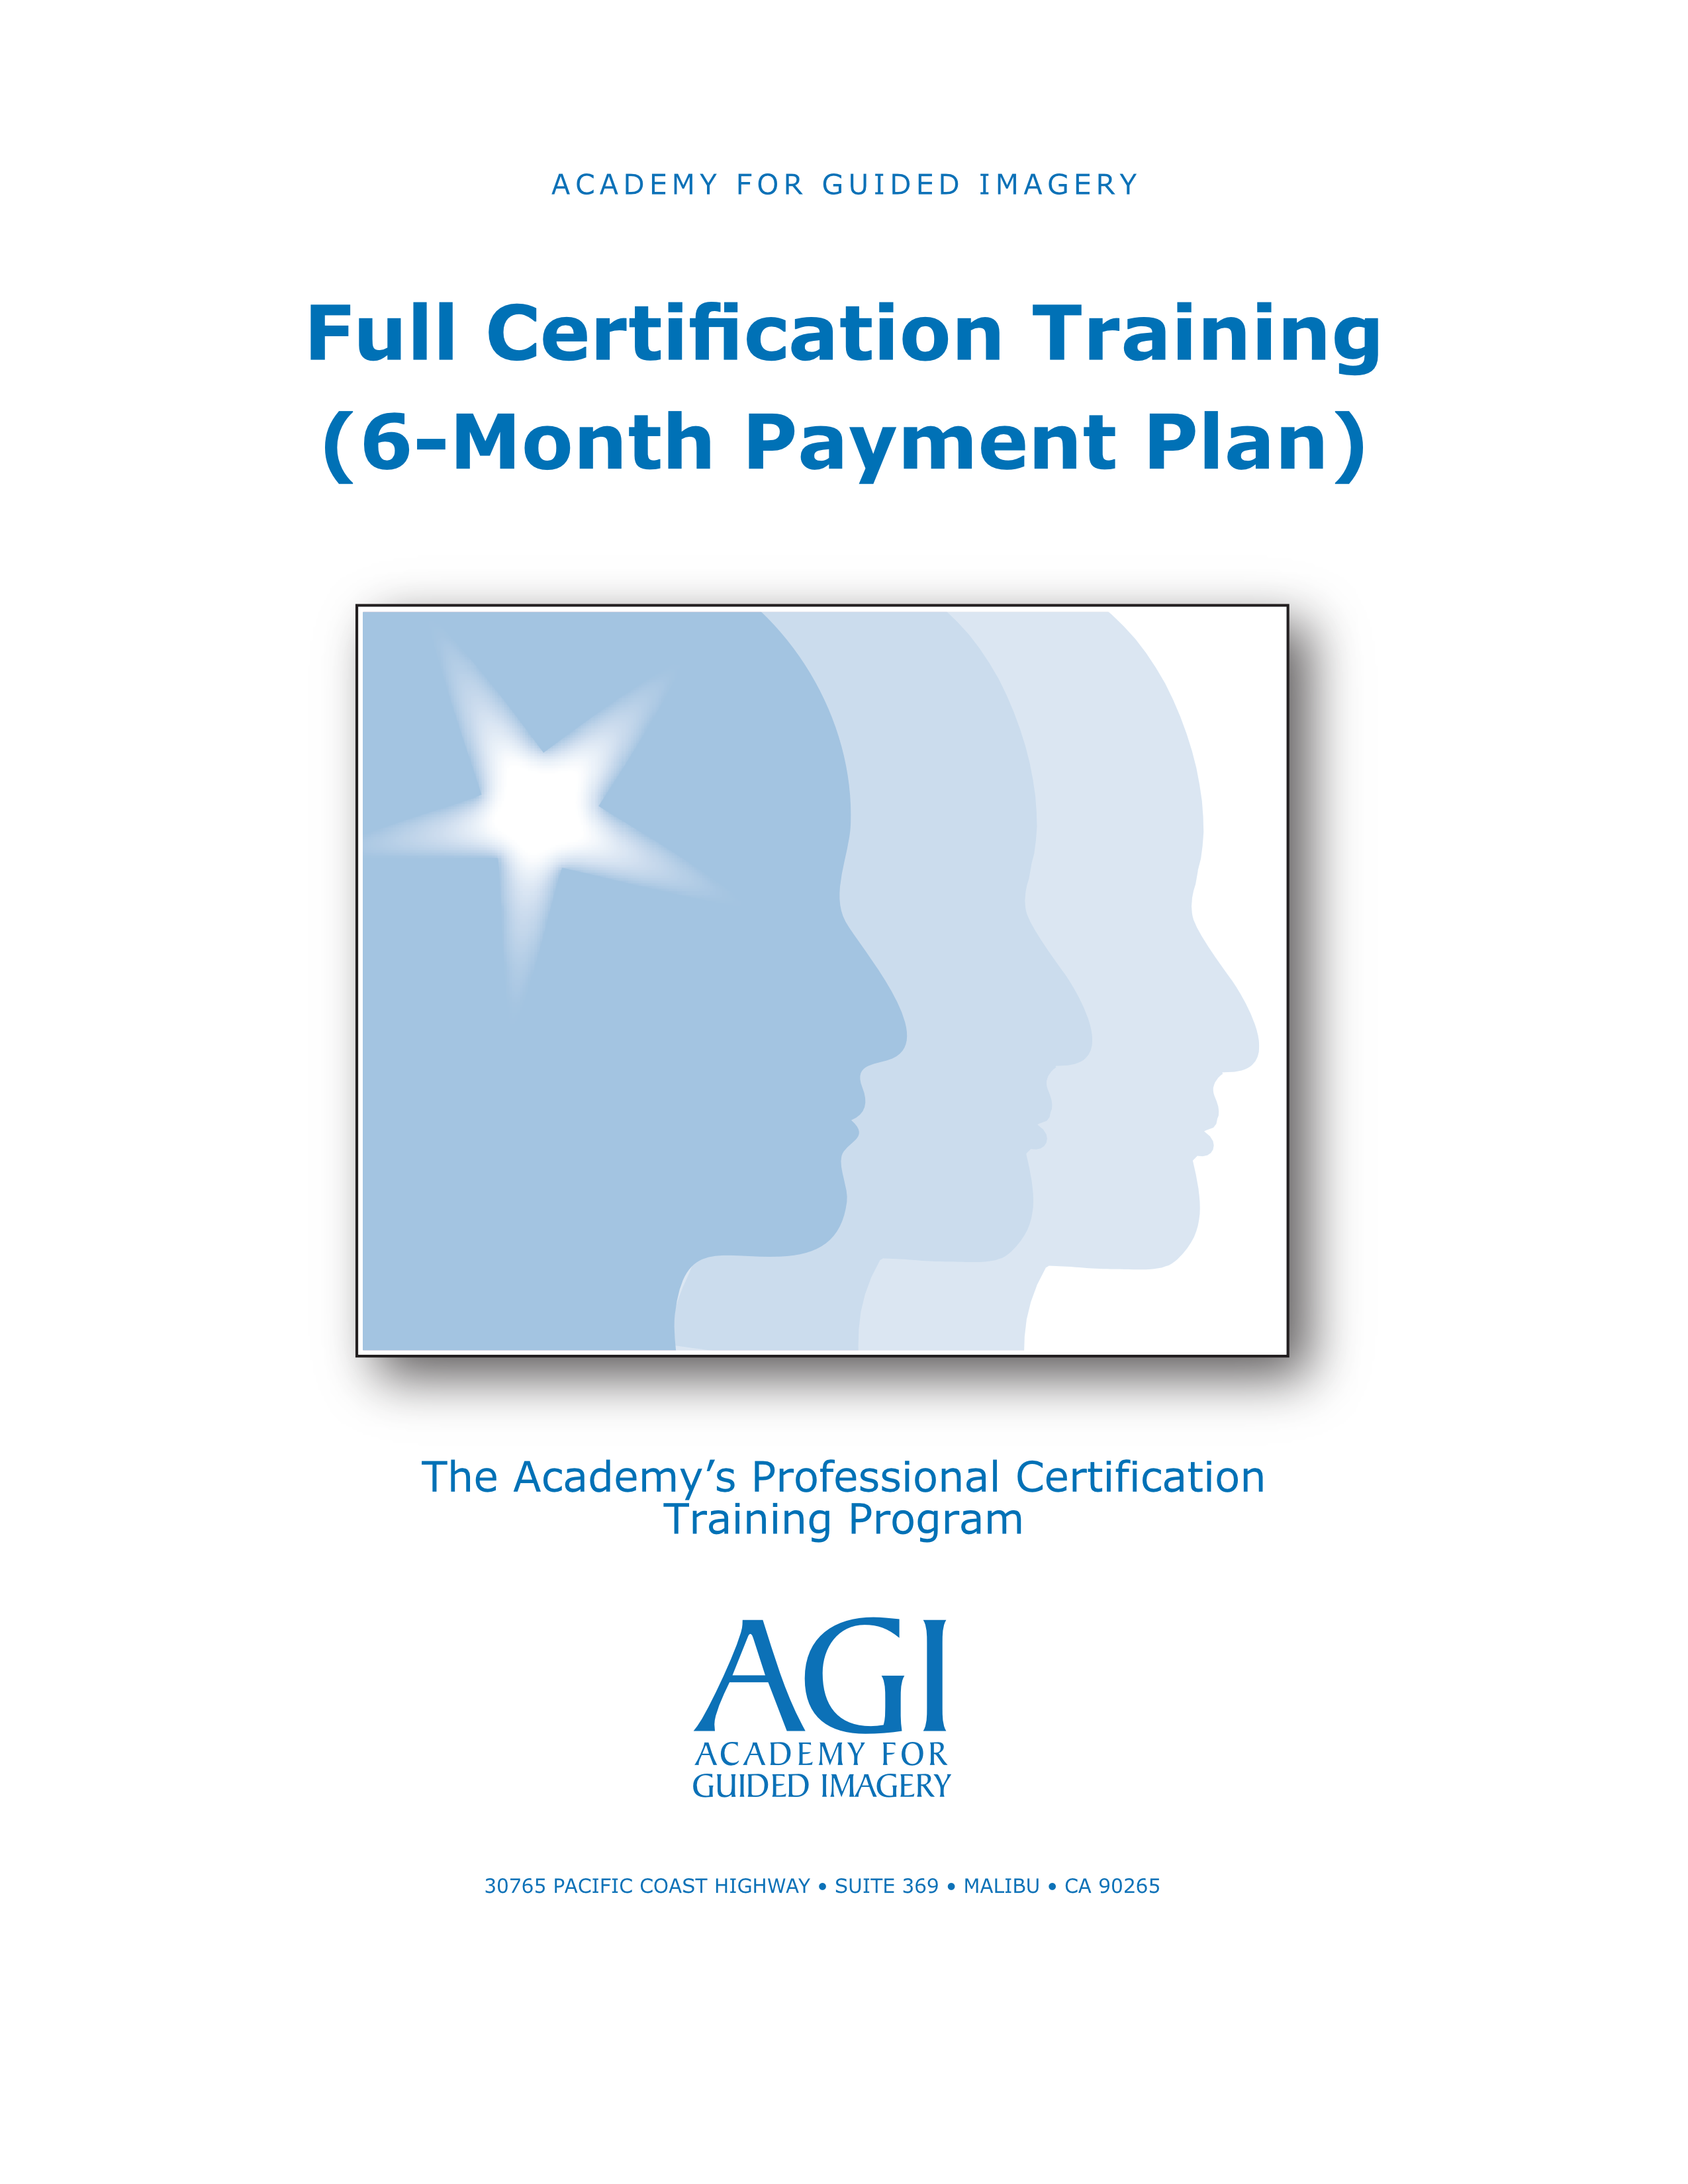 Full Certification Training (6-Month Payment Plan)